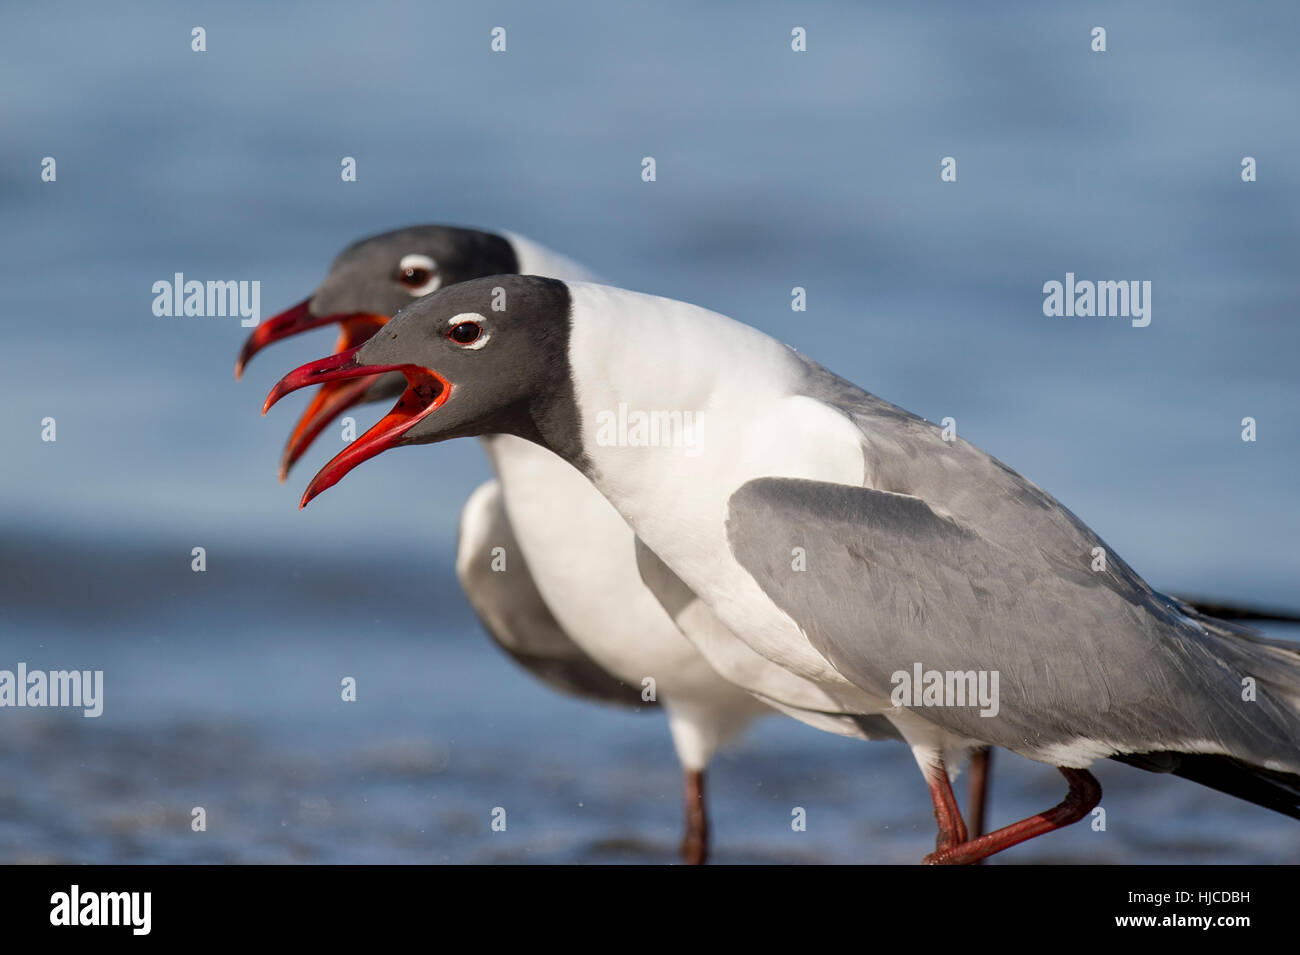 A pair of Laughing Gulls sporting their striking breeding colors perform a courtship ritual together on the beach - Stock Image